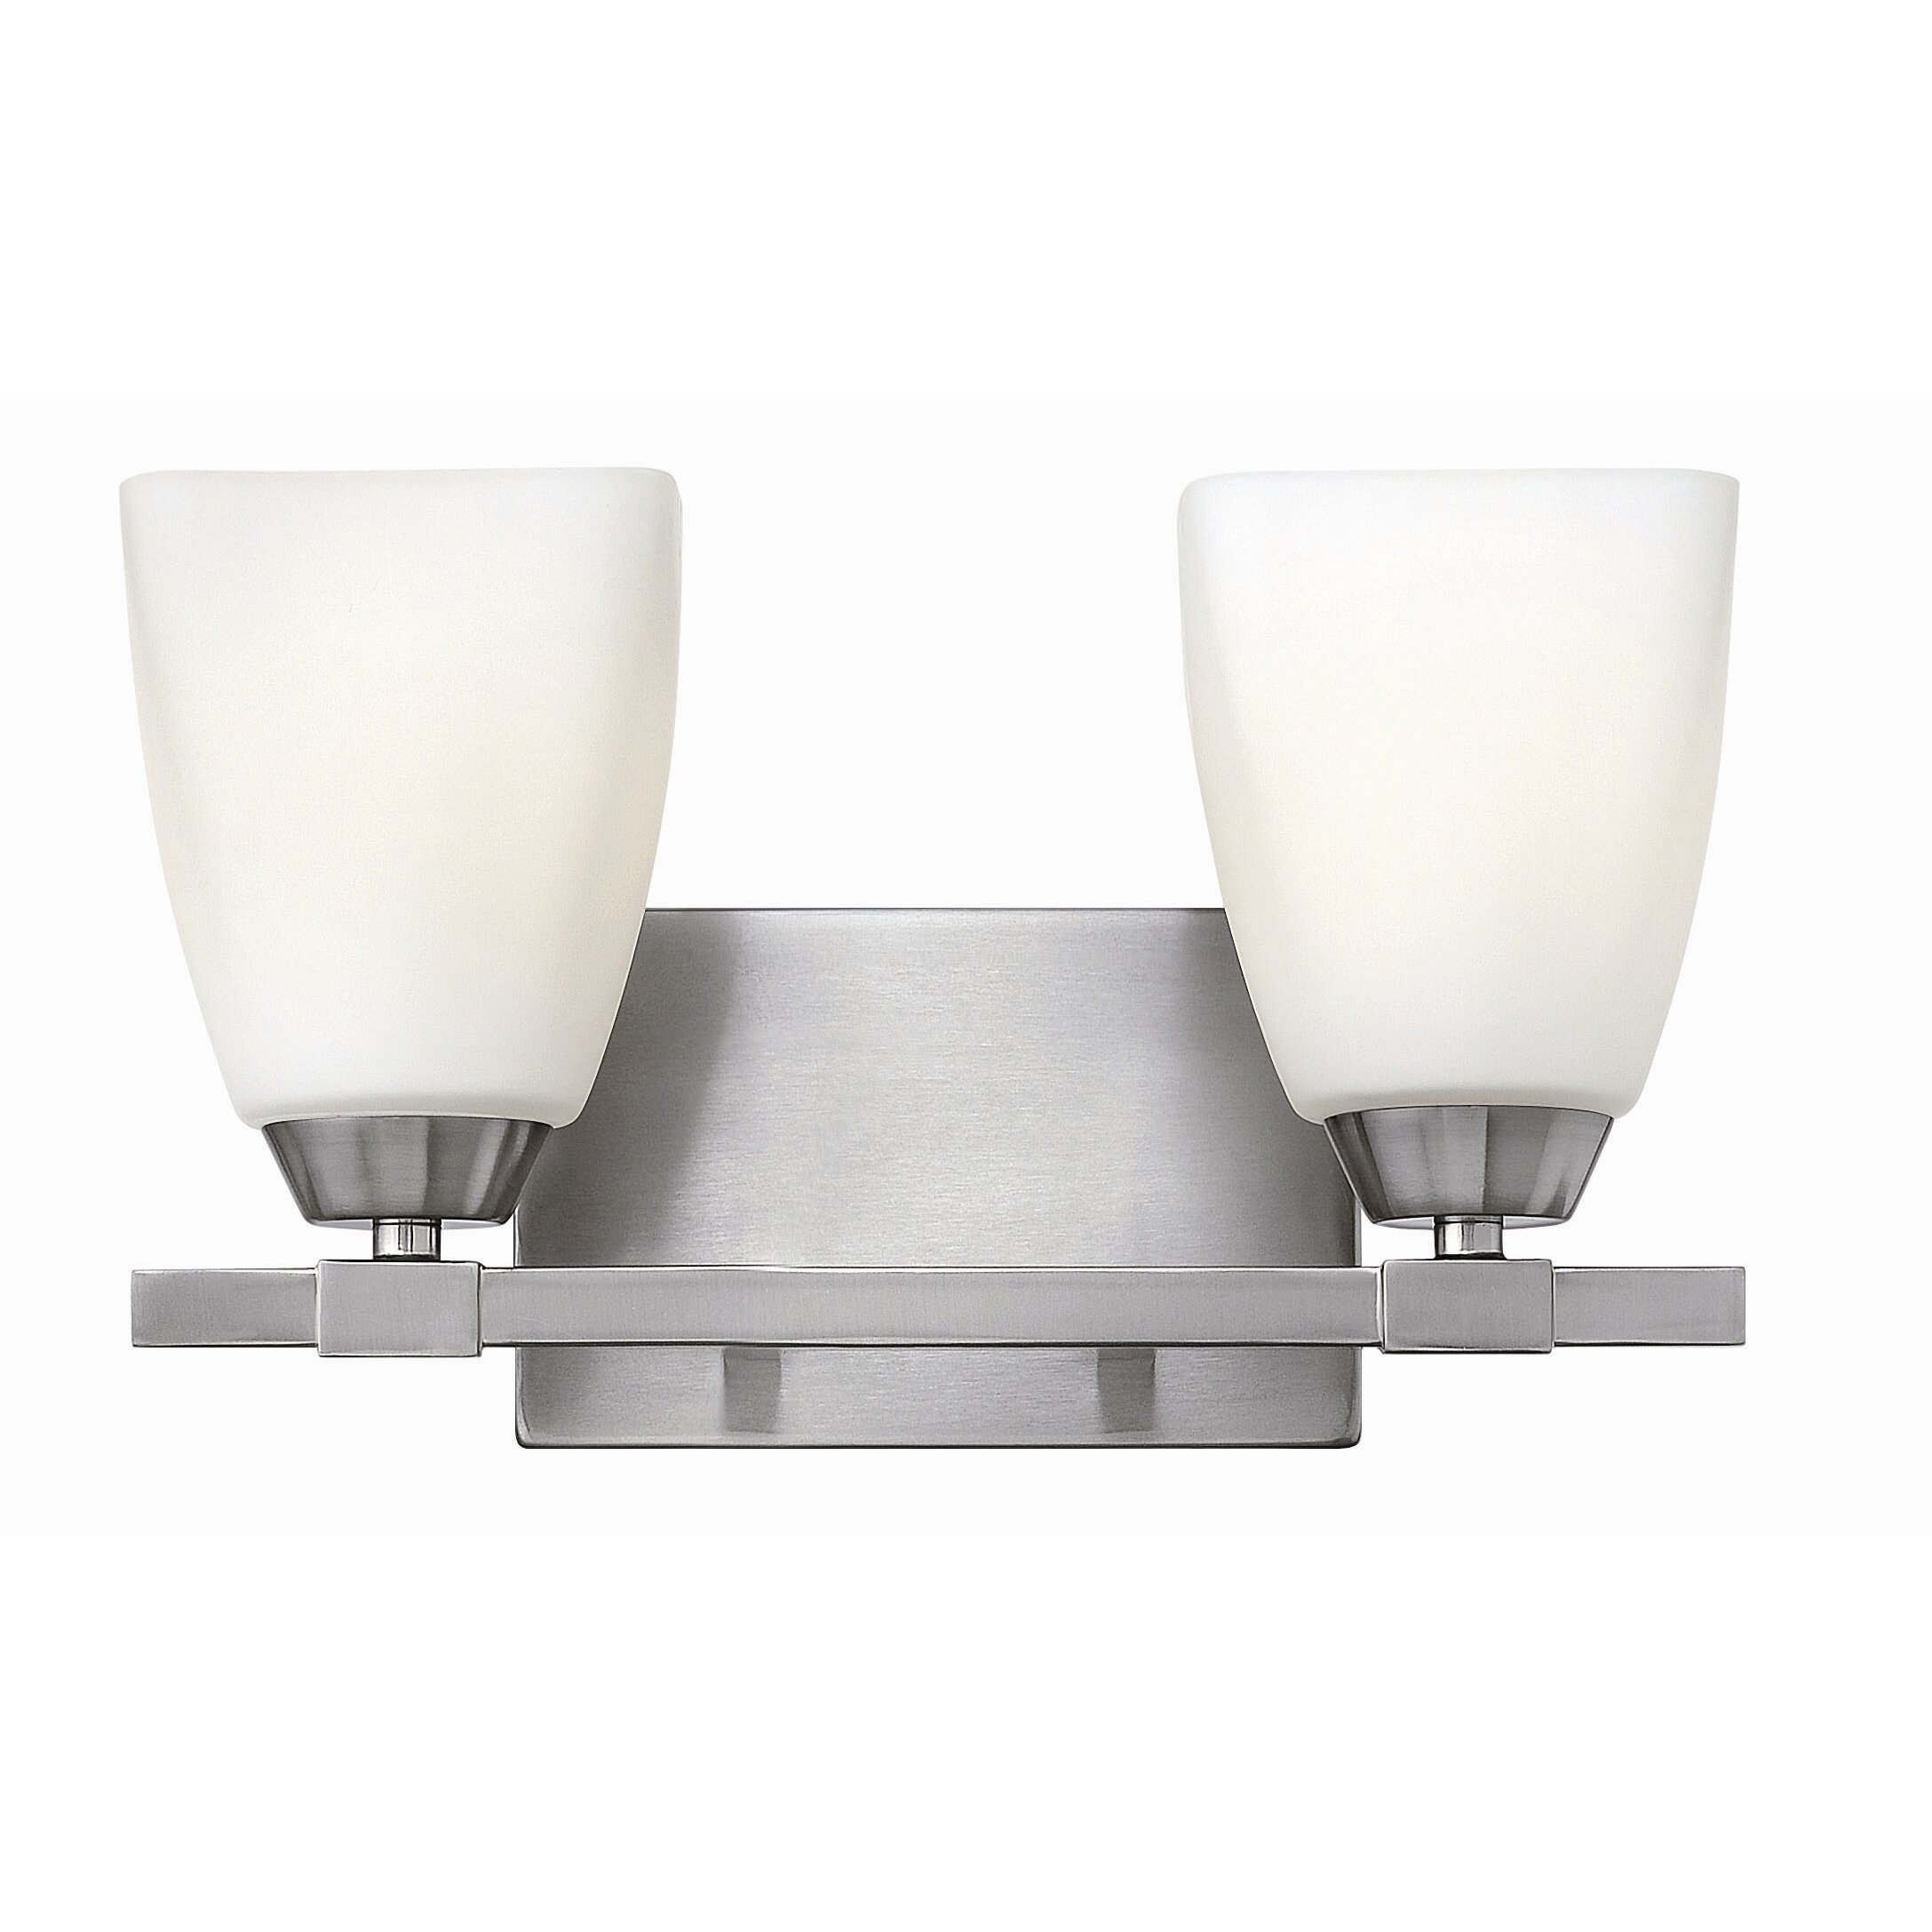 Hinkley lighting jordan 2 light bath vanity light for Hinkley bathroom vanity lighting